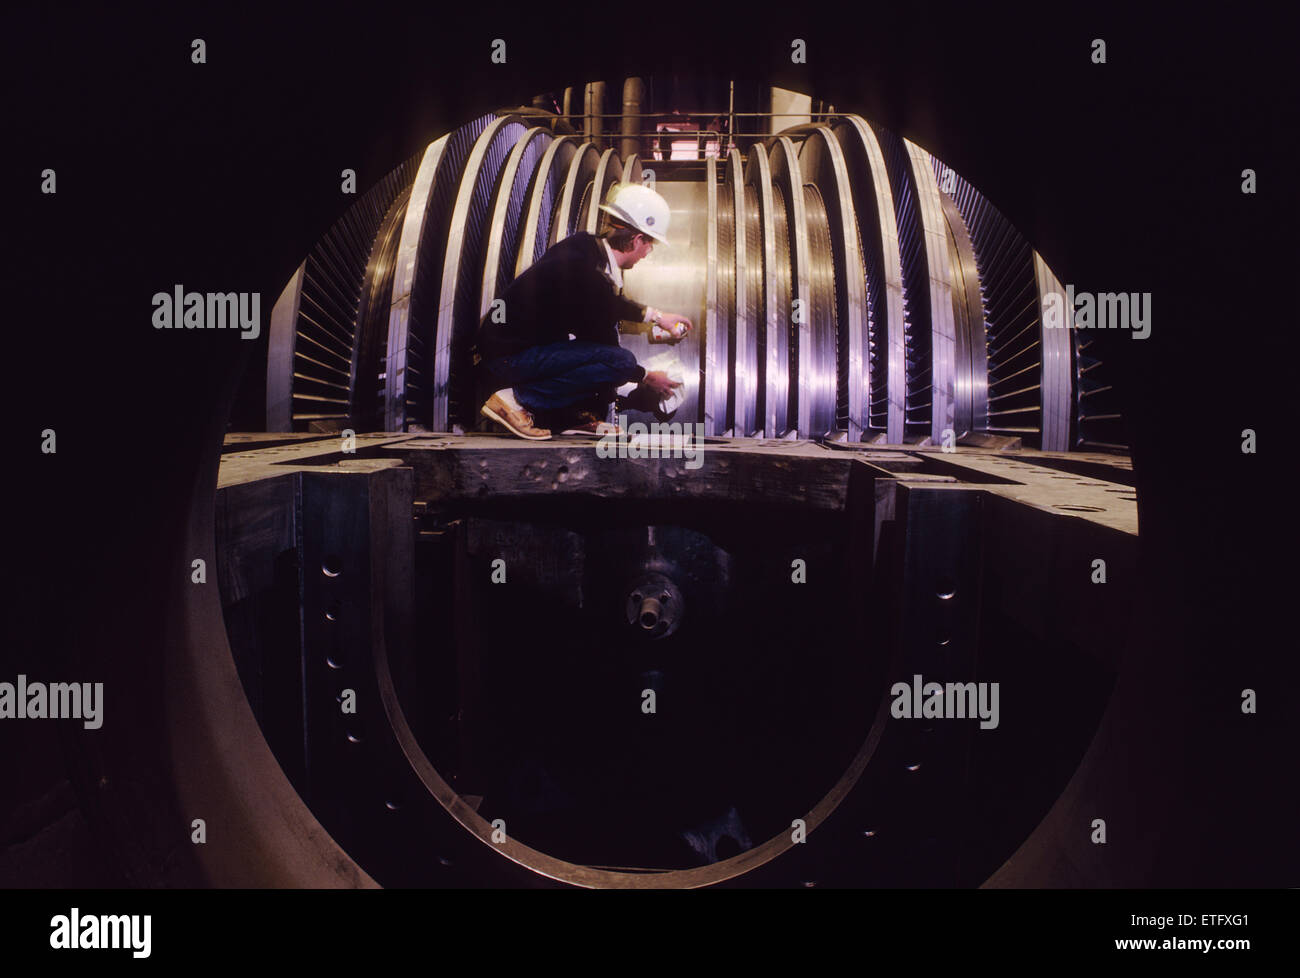 Male engineer inspecting the turbine rotors at a nuclear power plant - Stock Image